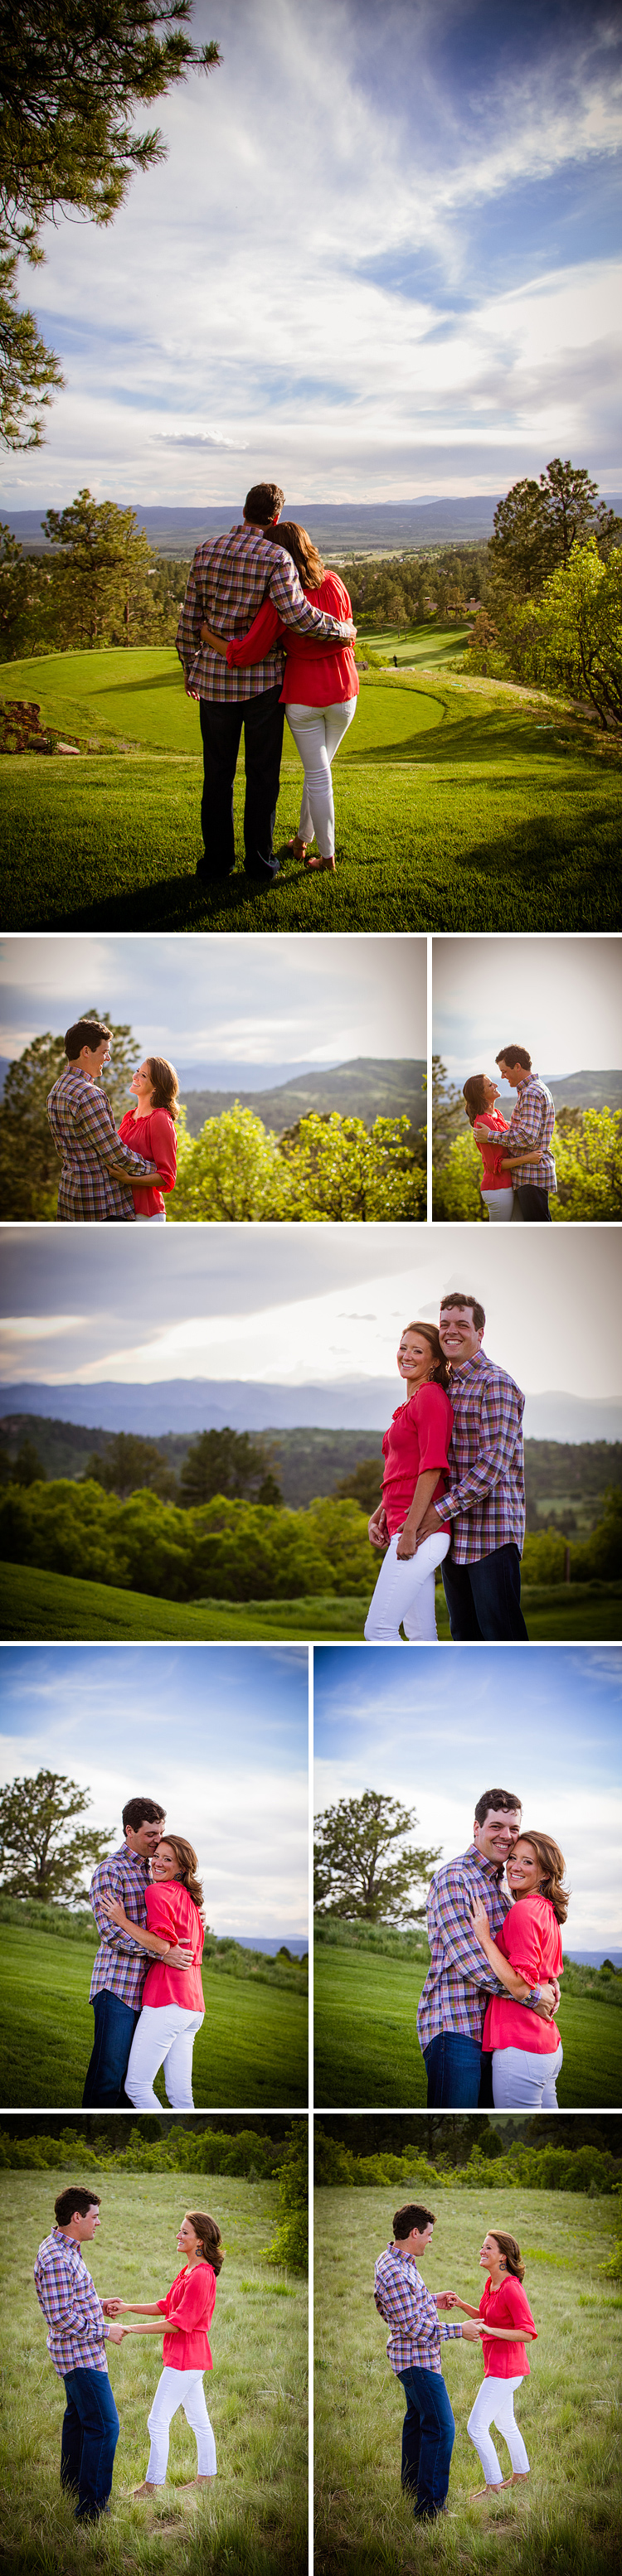 castle-pines-country-club-engagement-colorado-01